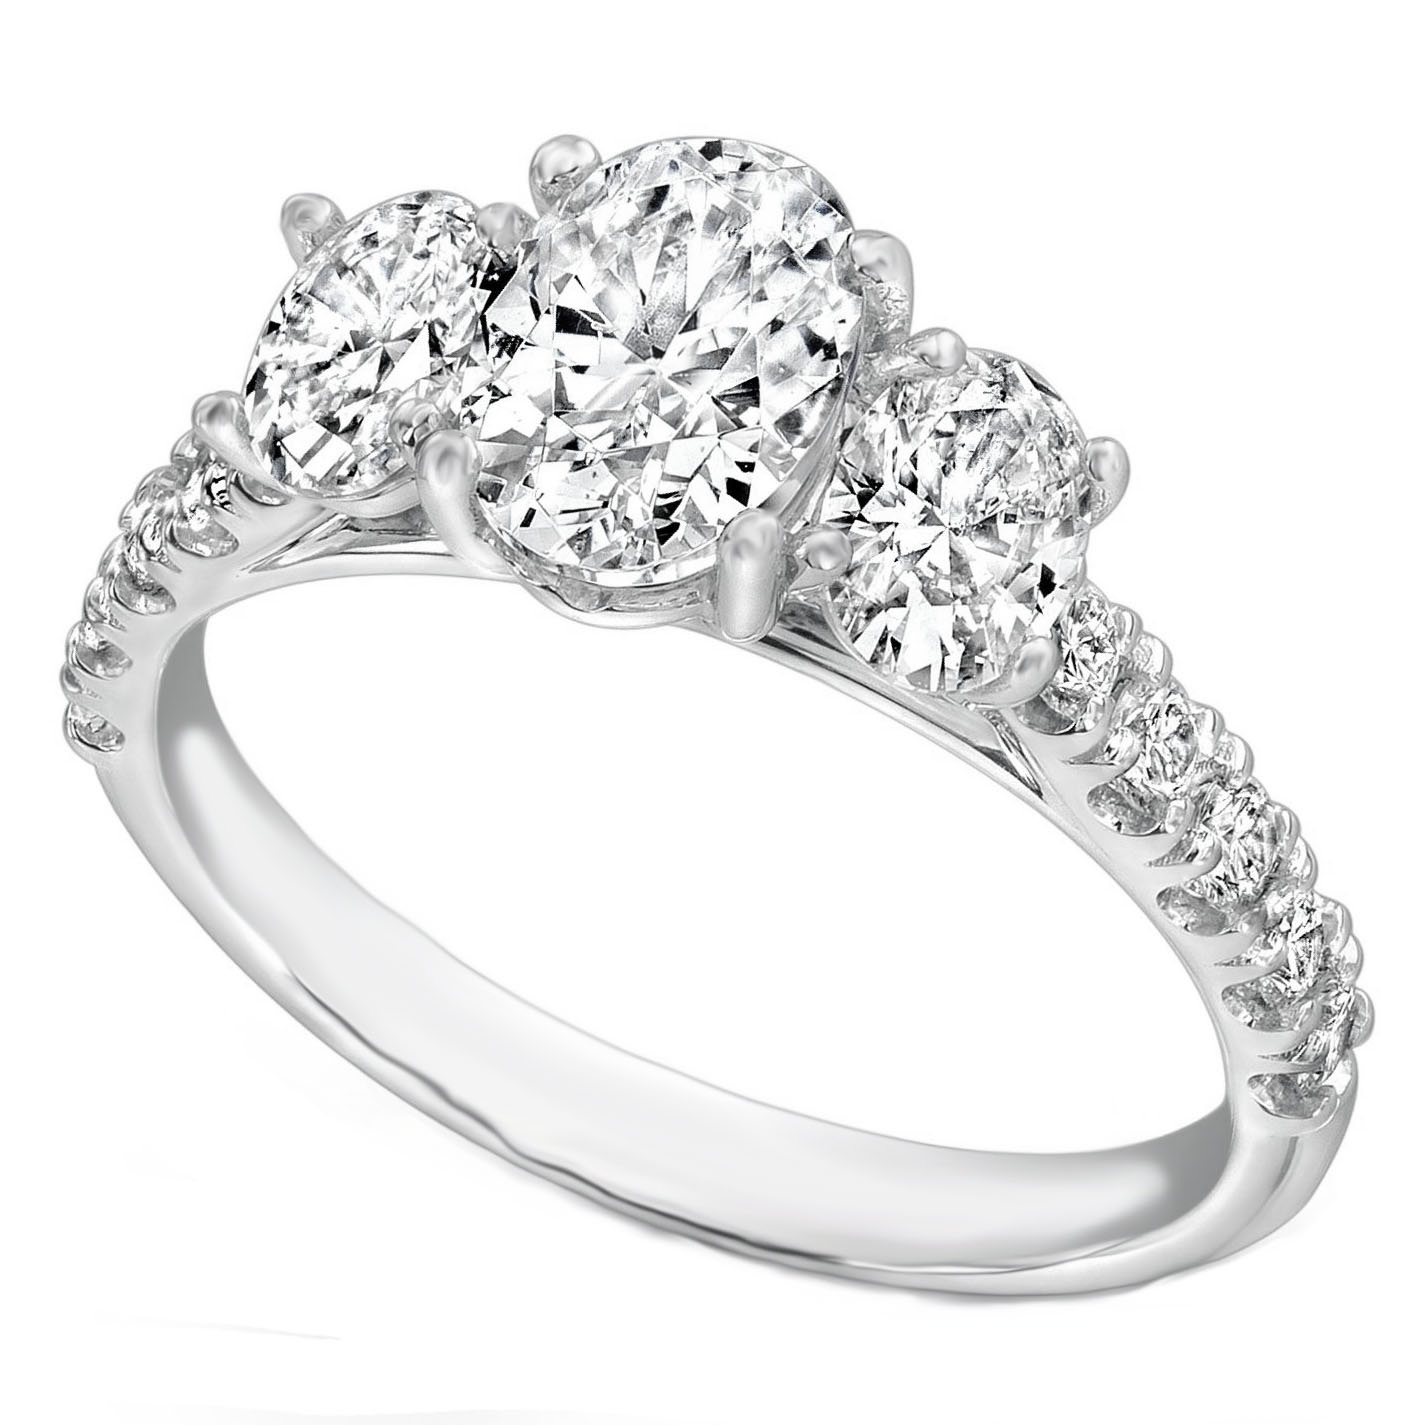 diamond engagement radiant diamonds nyc engagementringsre mdc band monzonite cfm prongs rings in from ring pave tcw platinum